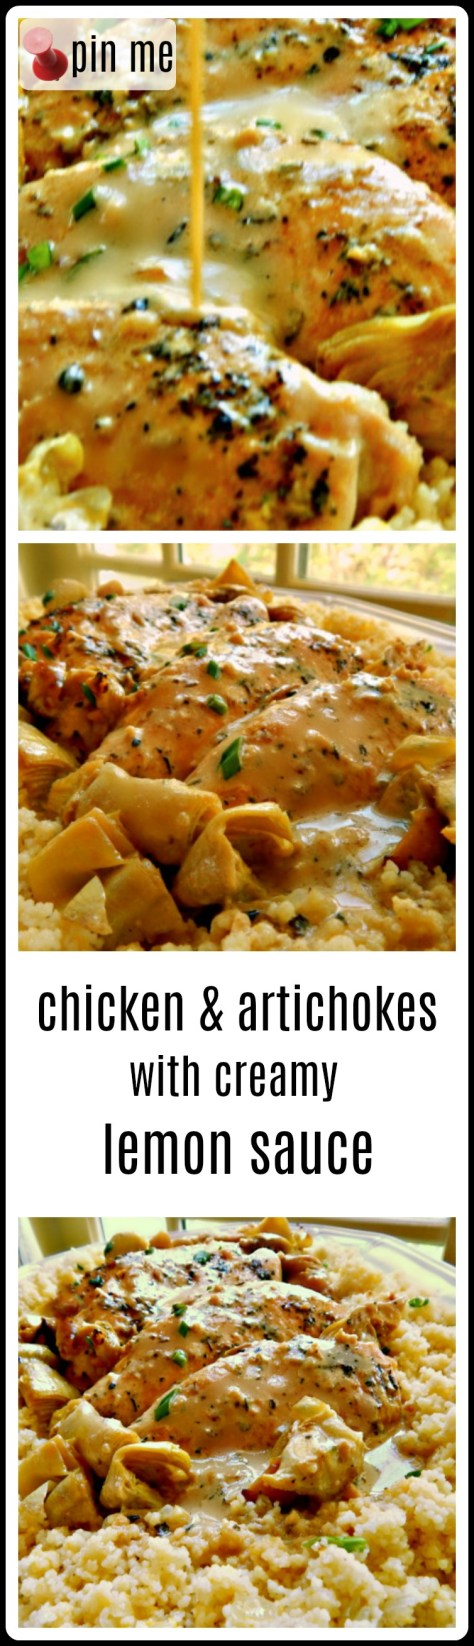 Chicken & Artichokes with a Creamy Lemon Sauce. So good! Perfect for a special dinner.